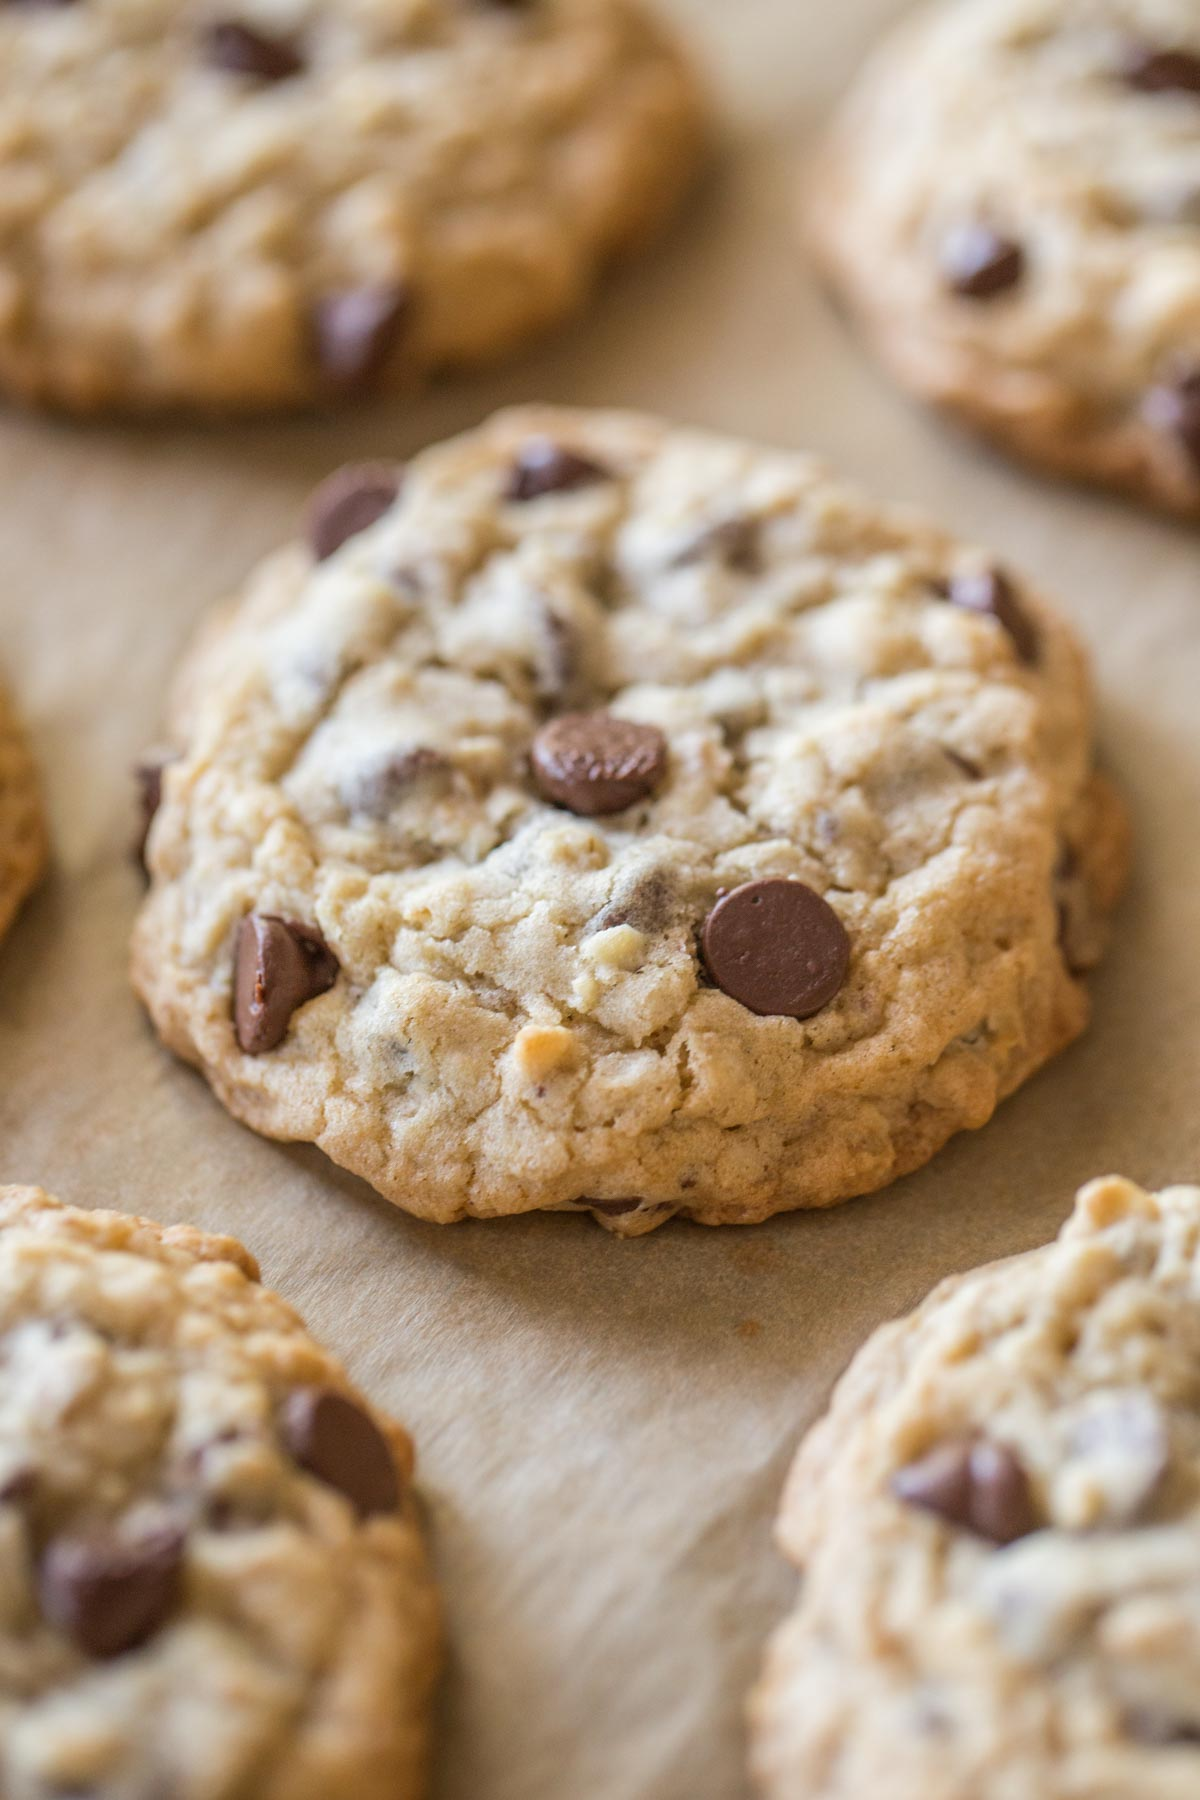 Bakery Style Oatmeal Chocolate Chip Cookies on a parchment paper lined baking sheet.